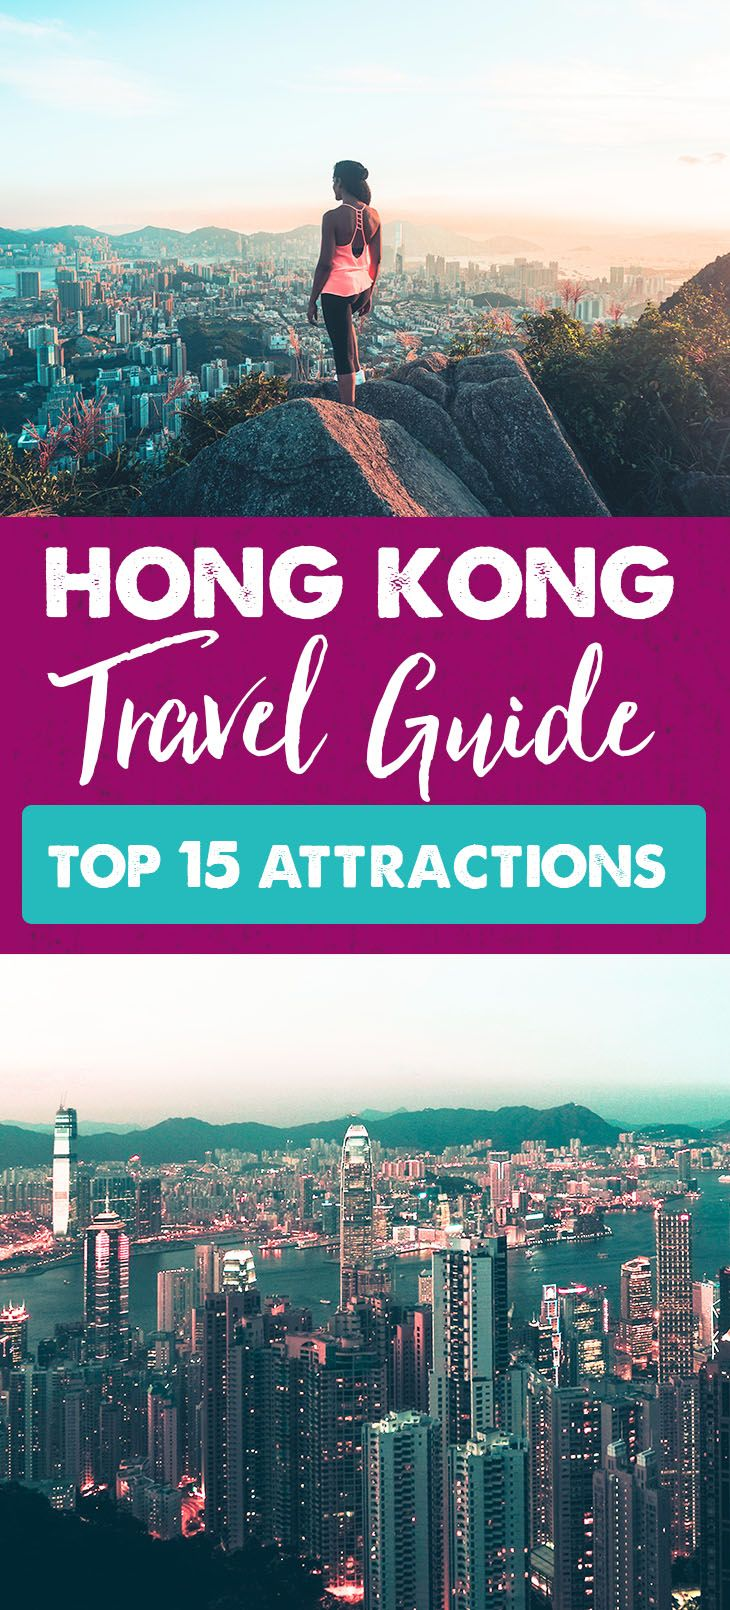 Hong Kong Travel Guide - Top 15 Attractions